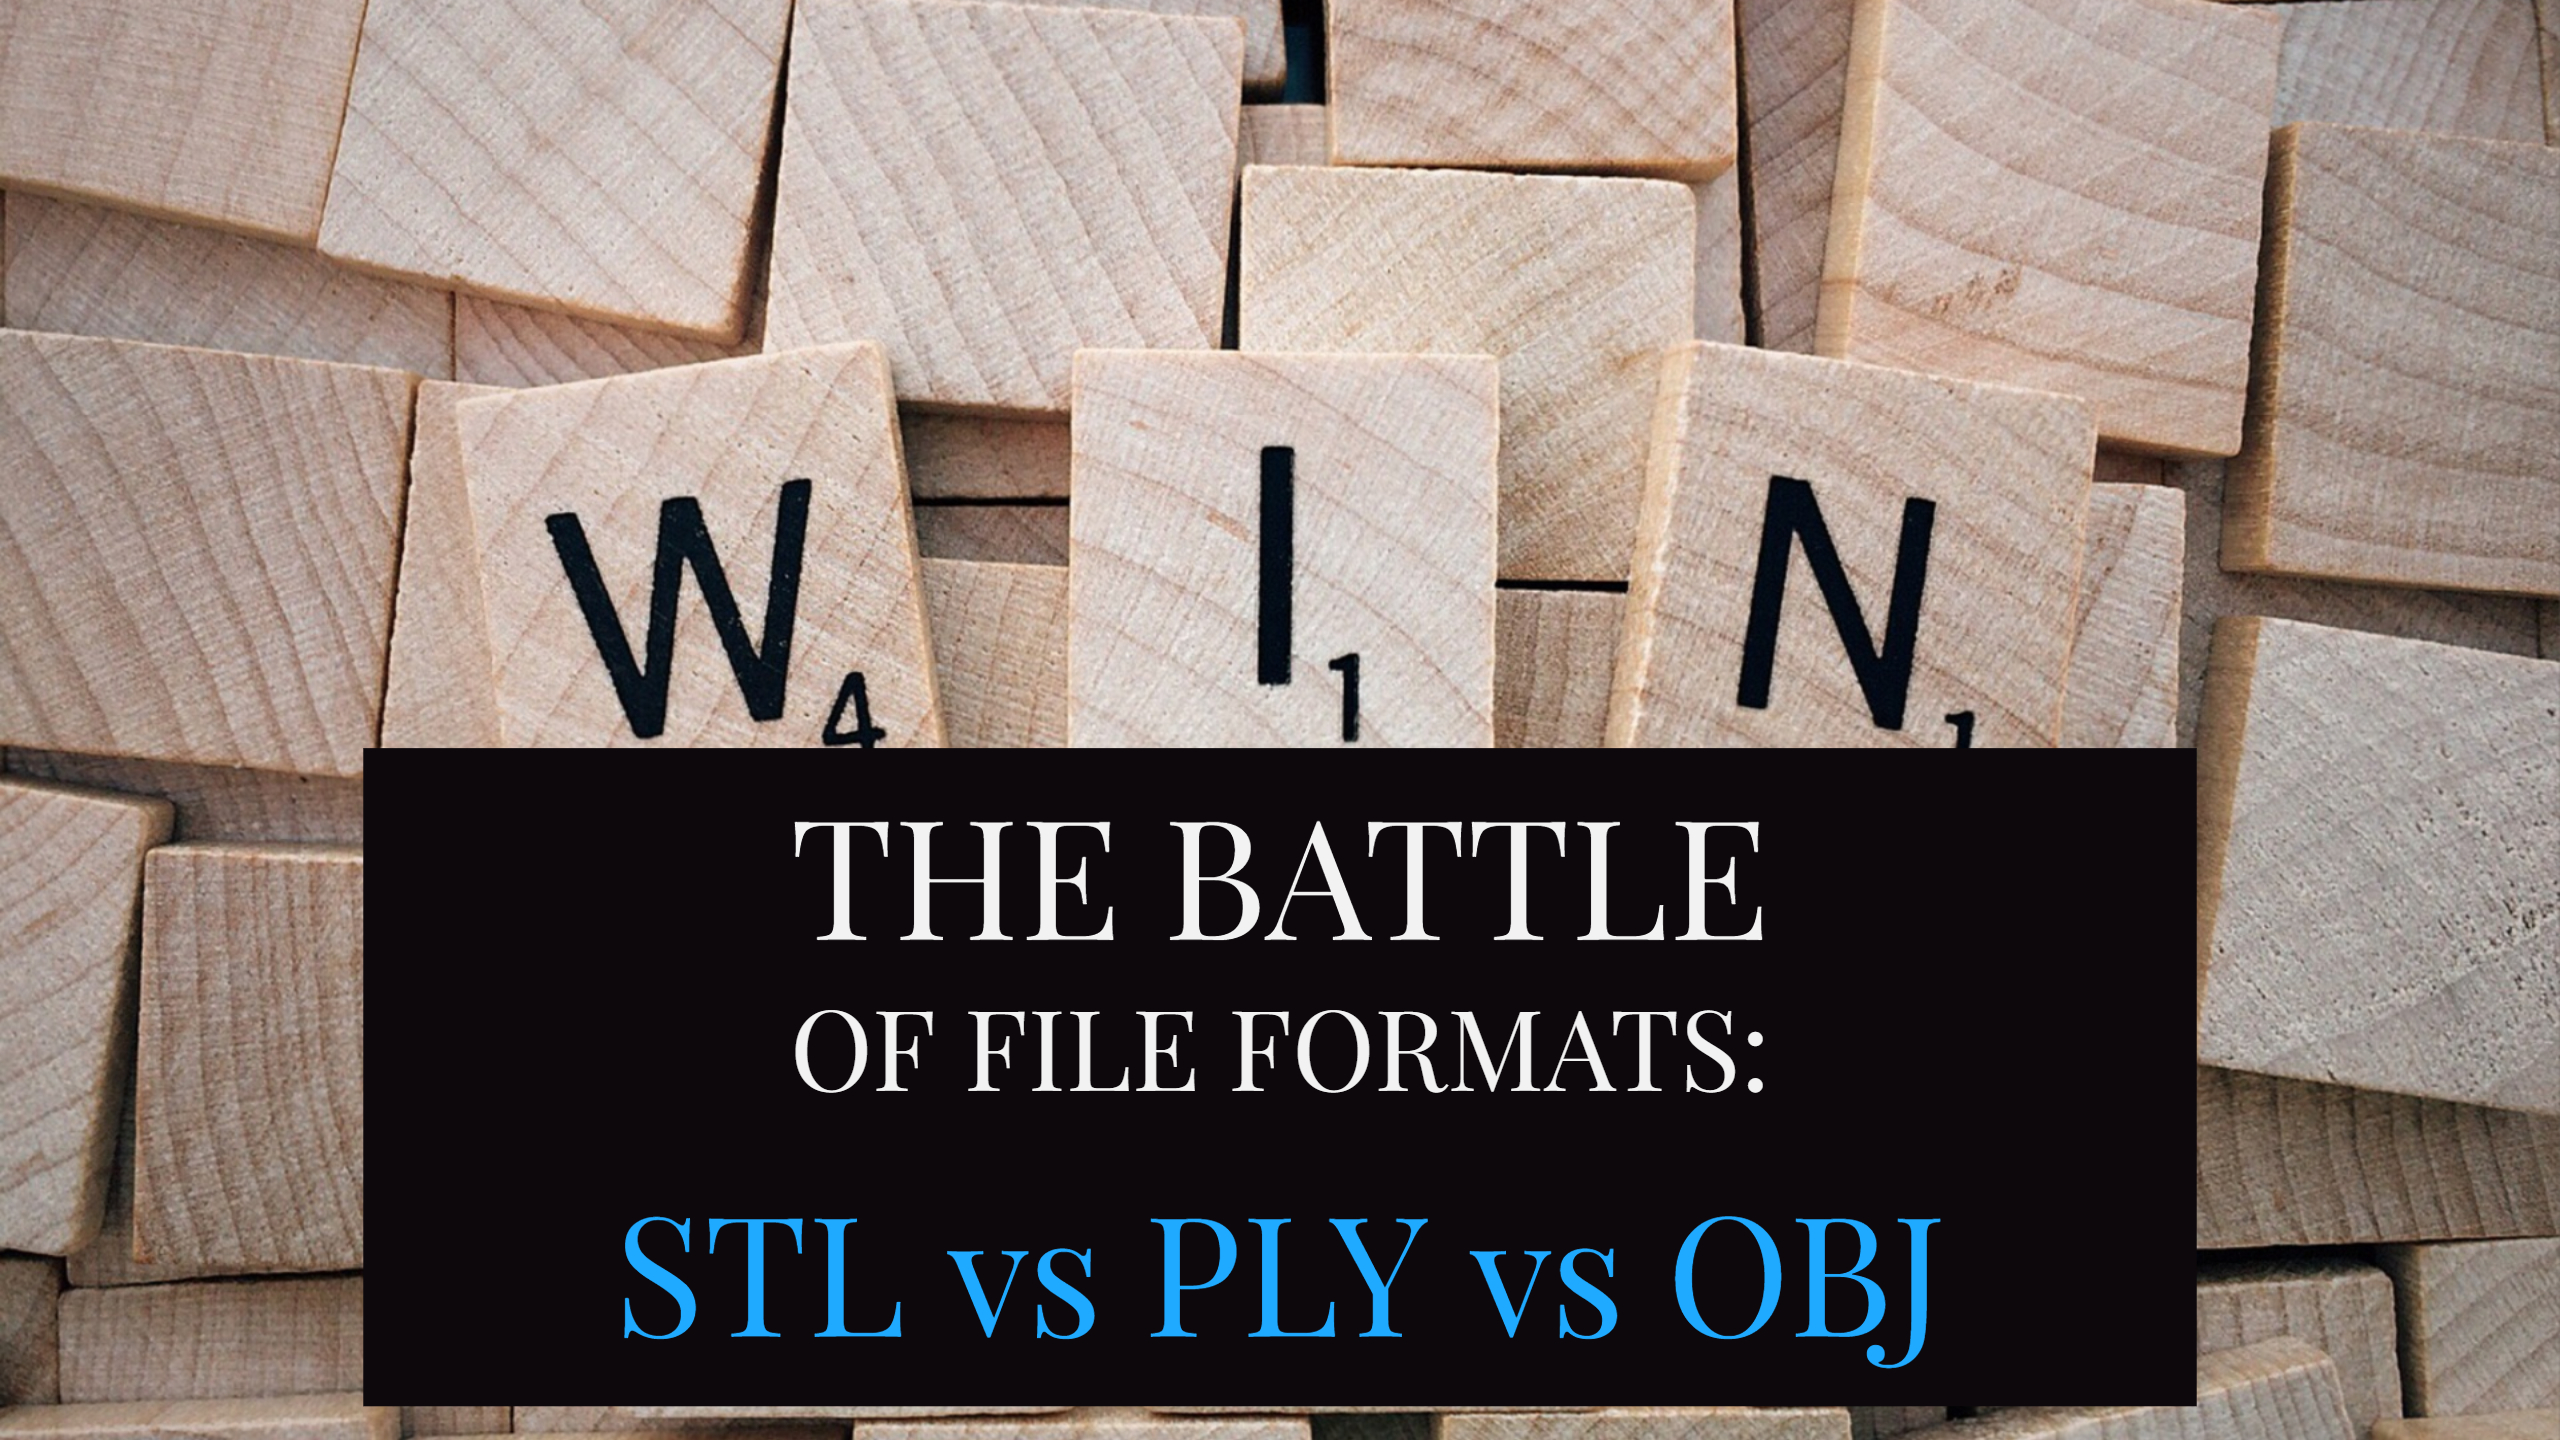 The Battle of File Formats